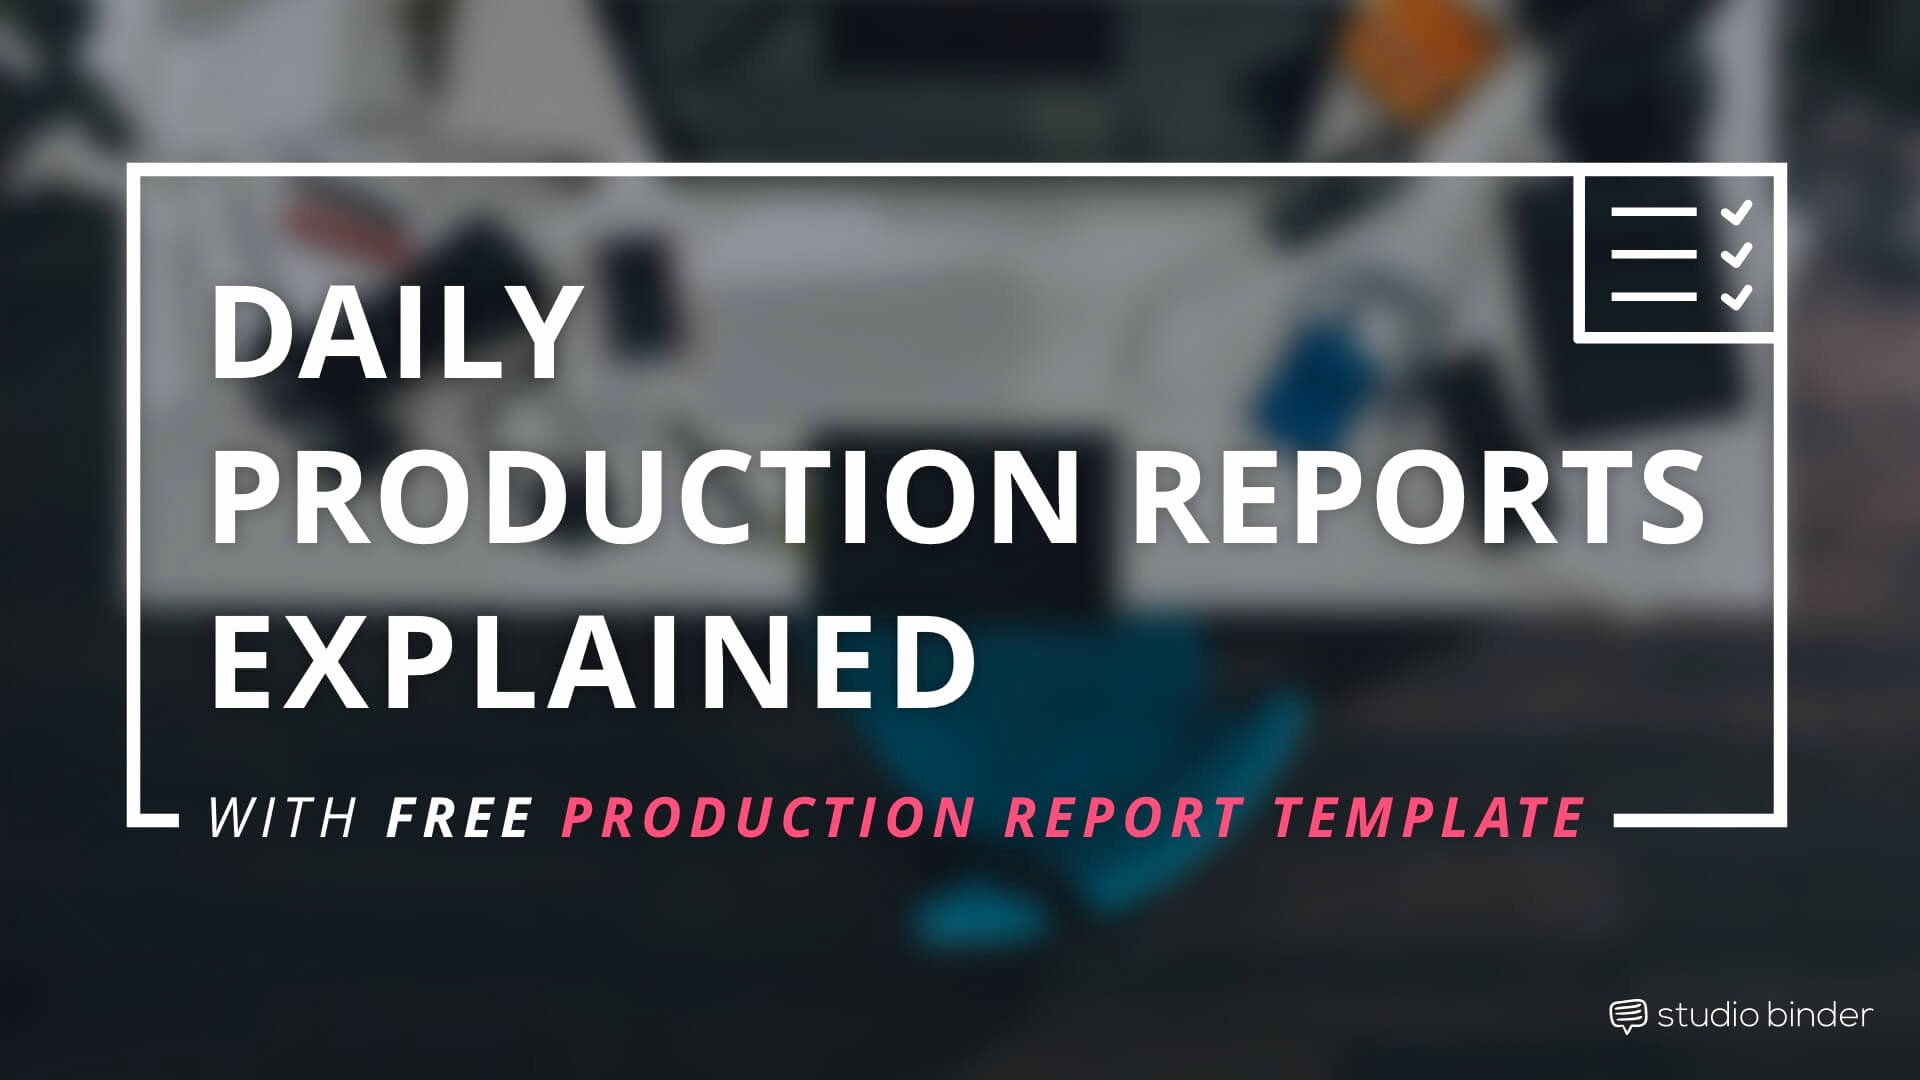 Daily Production Report Template Excel Best Of the Daily Production Report Explained with Free Template